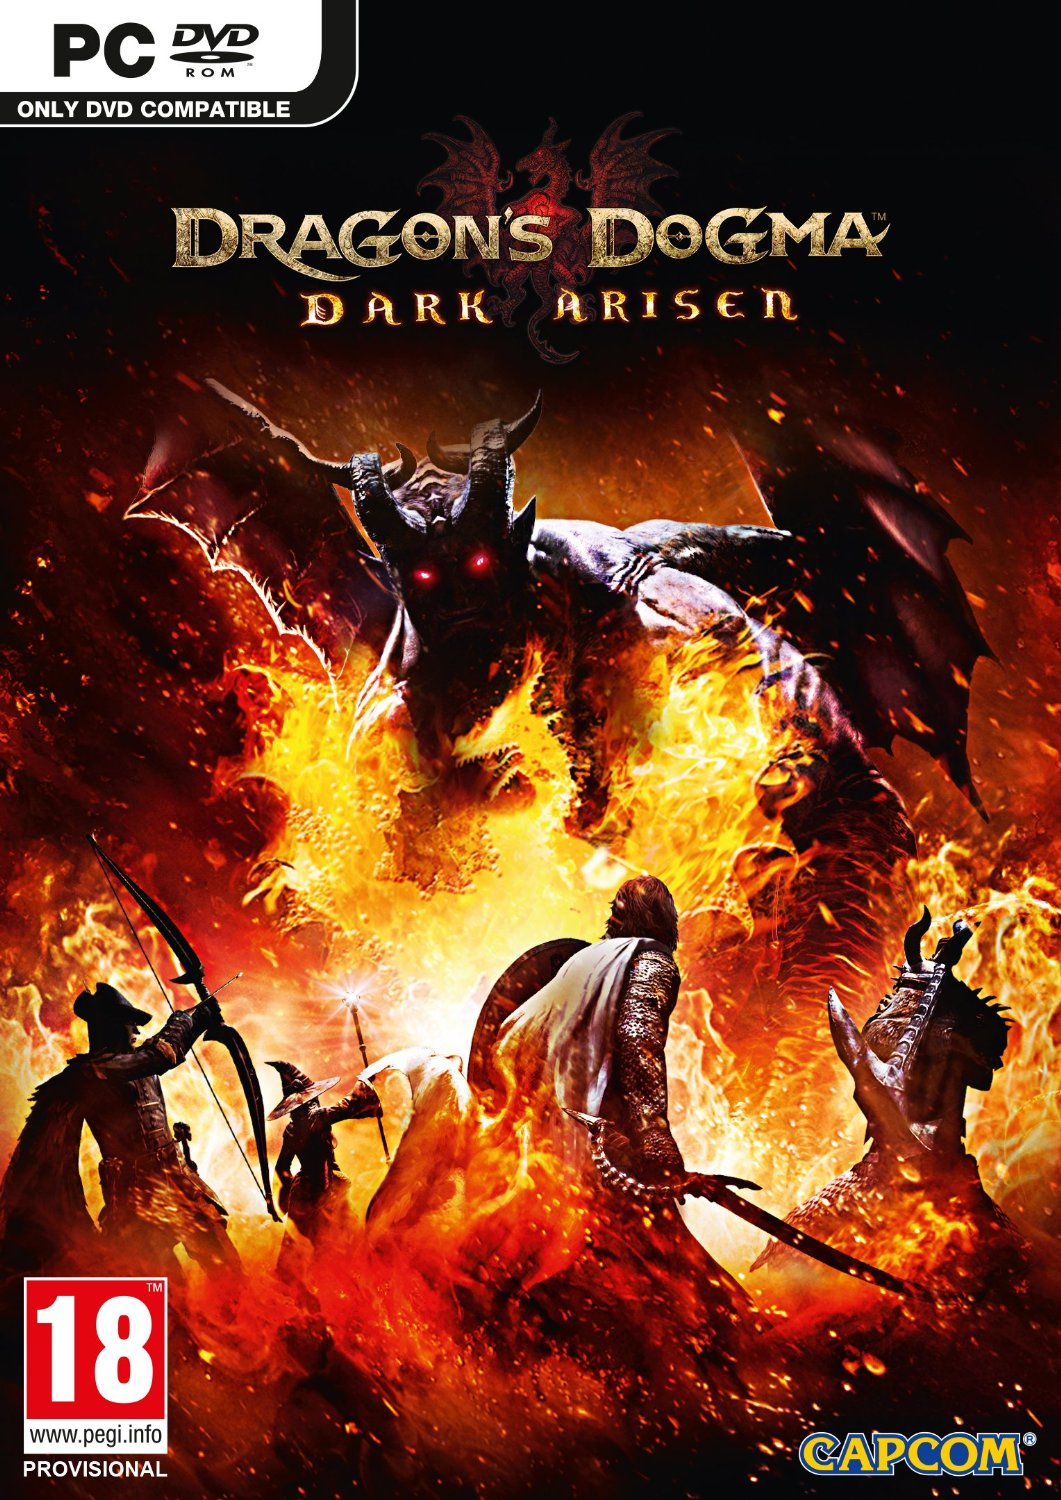 Poster for Dragon's Dogma: Dark Arisen